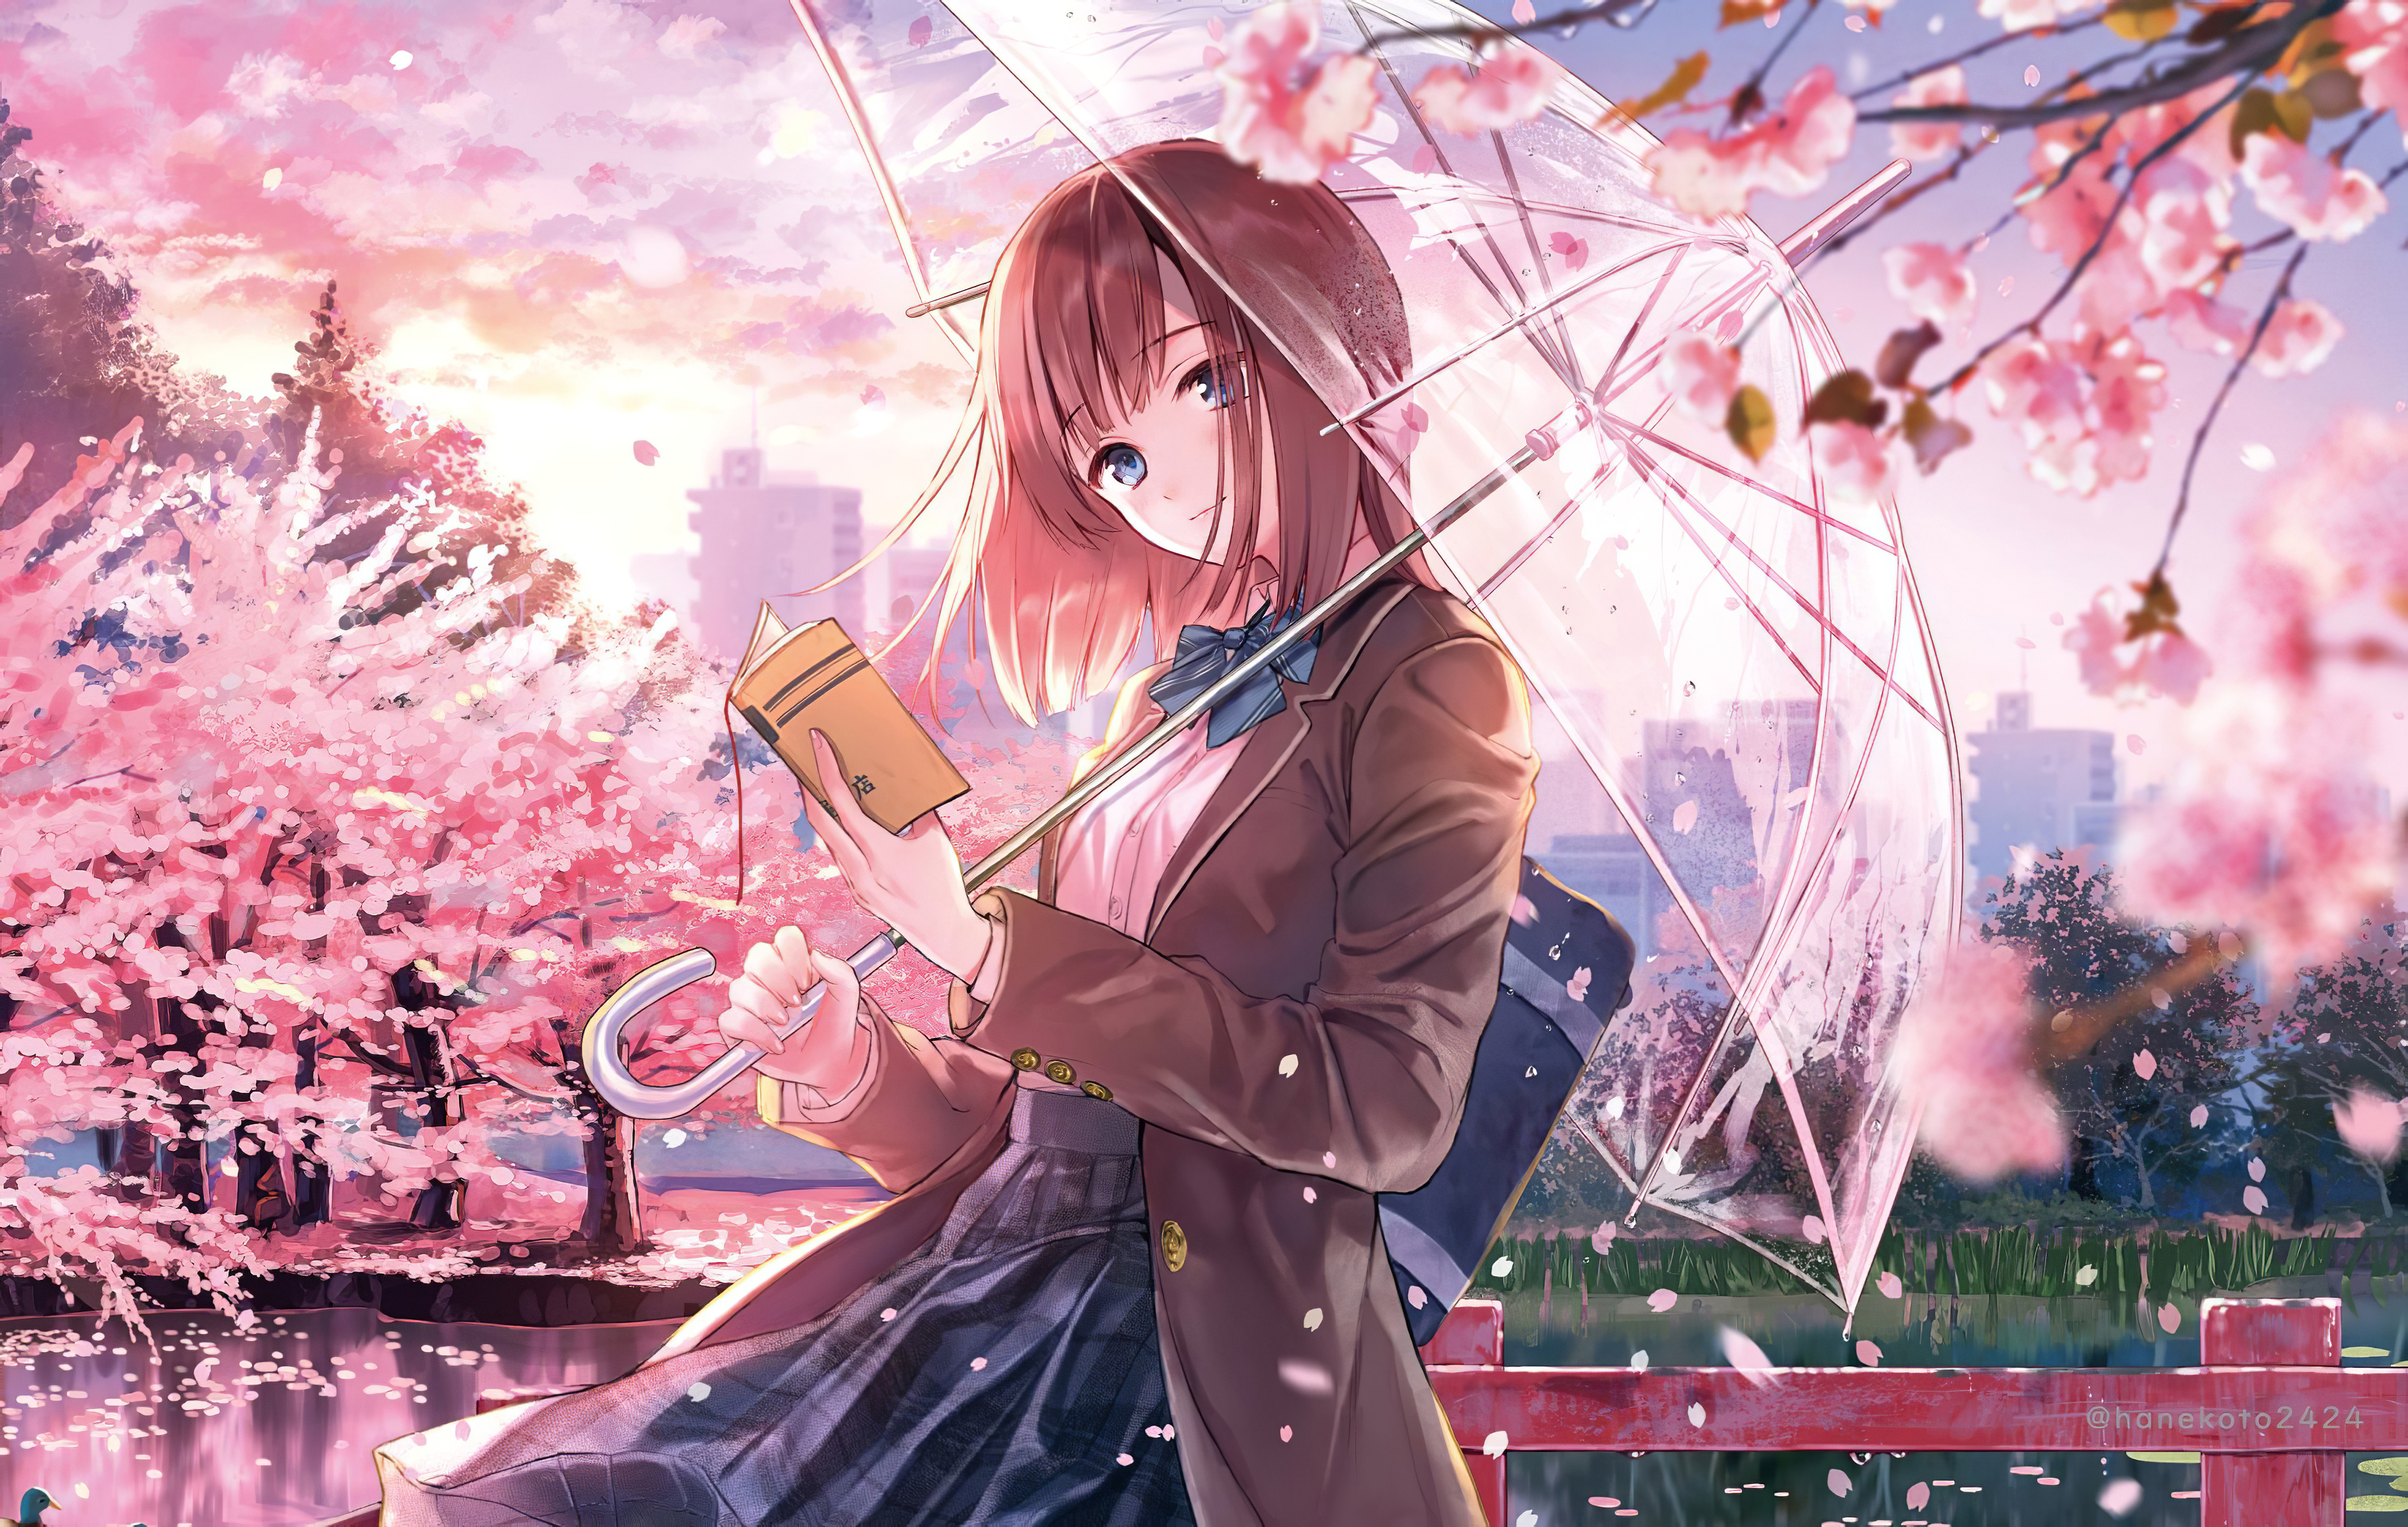 1125x2436 Anime Girl Cherry Blossom Season 5k Iphone Xs Iphone 10 Iphone X Hd 4k Wallpapers Images Backgrounds Photos And Pictures